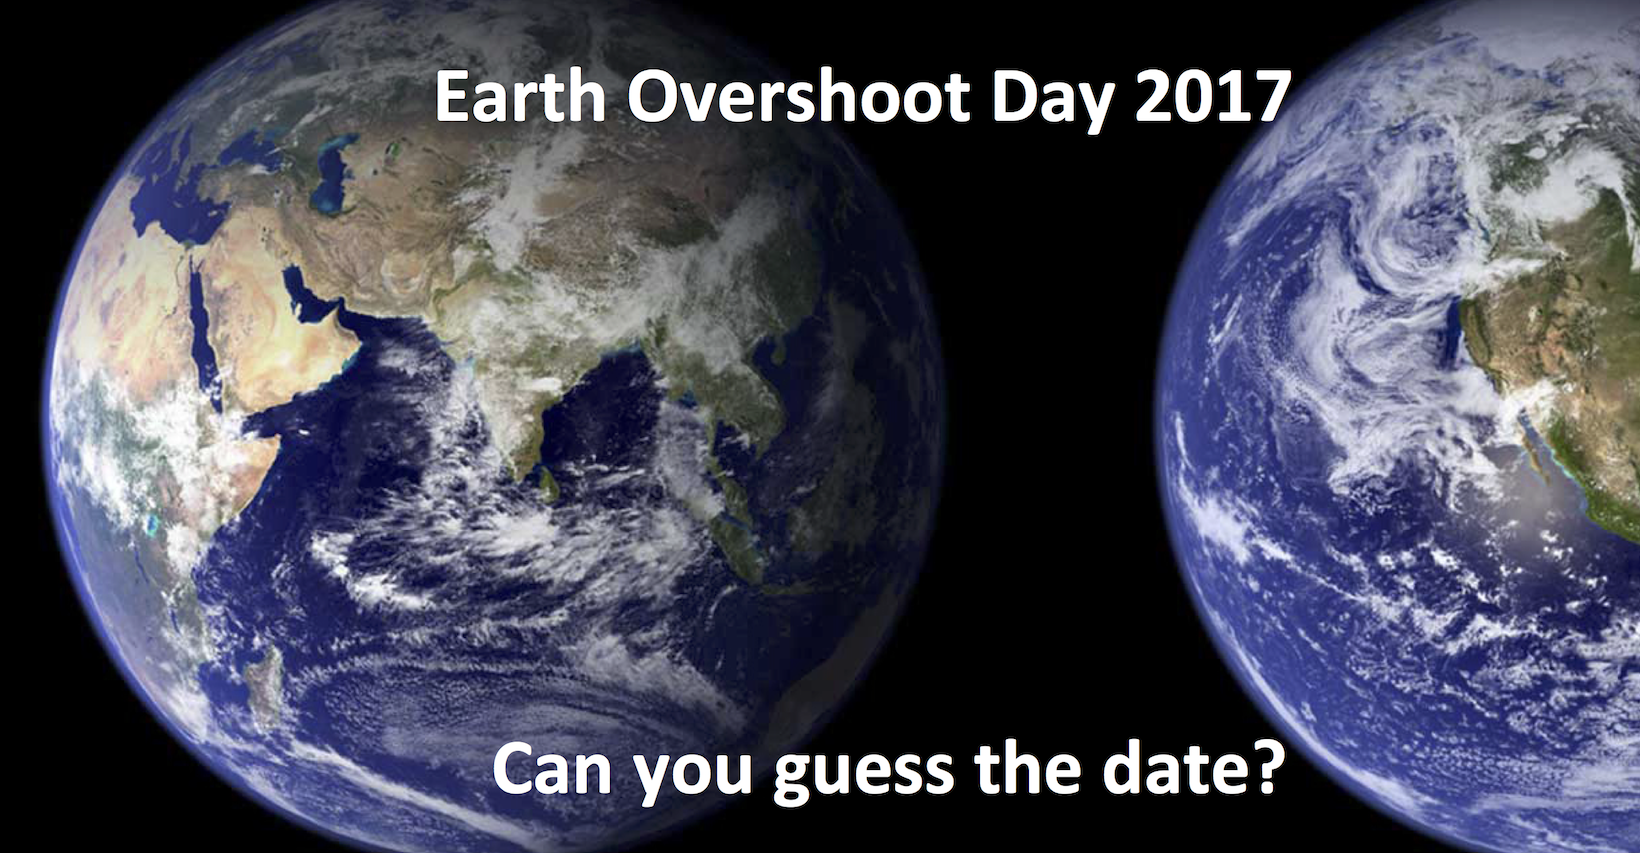 http://www.overshootday.org